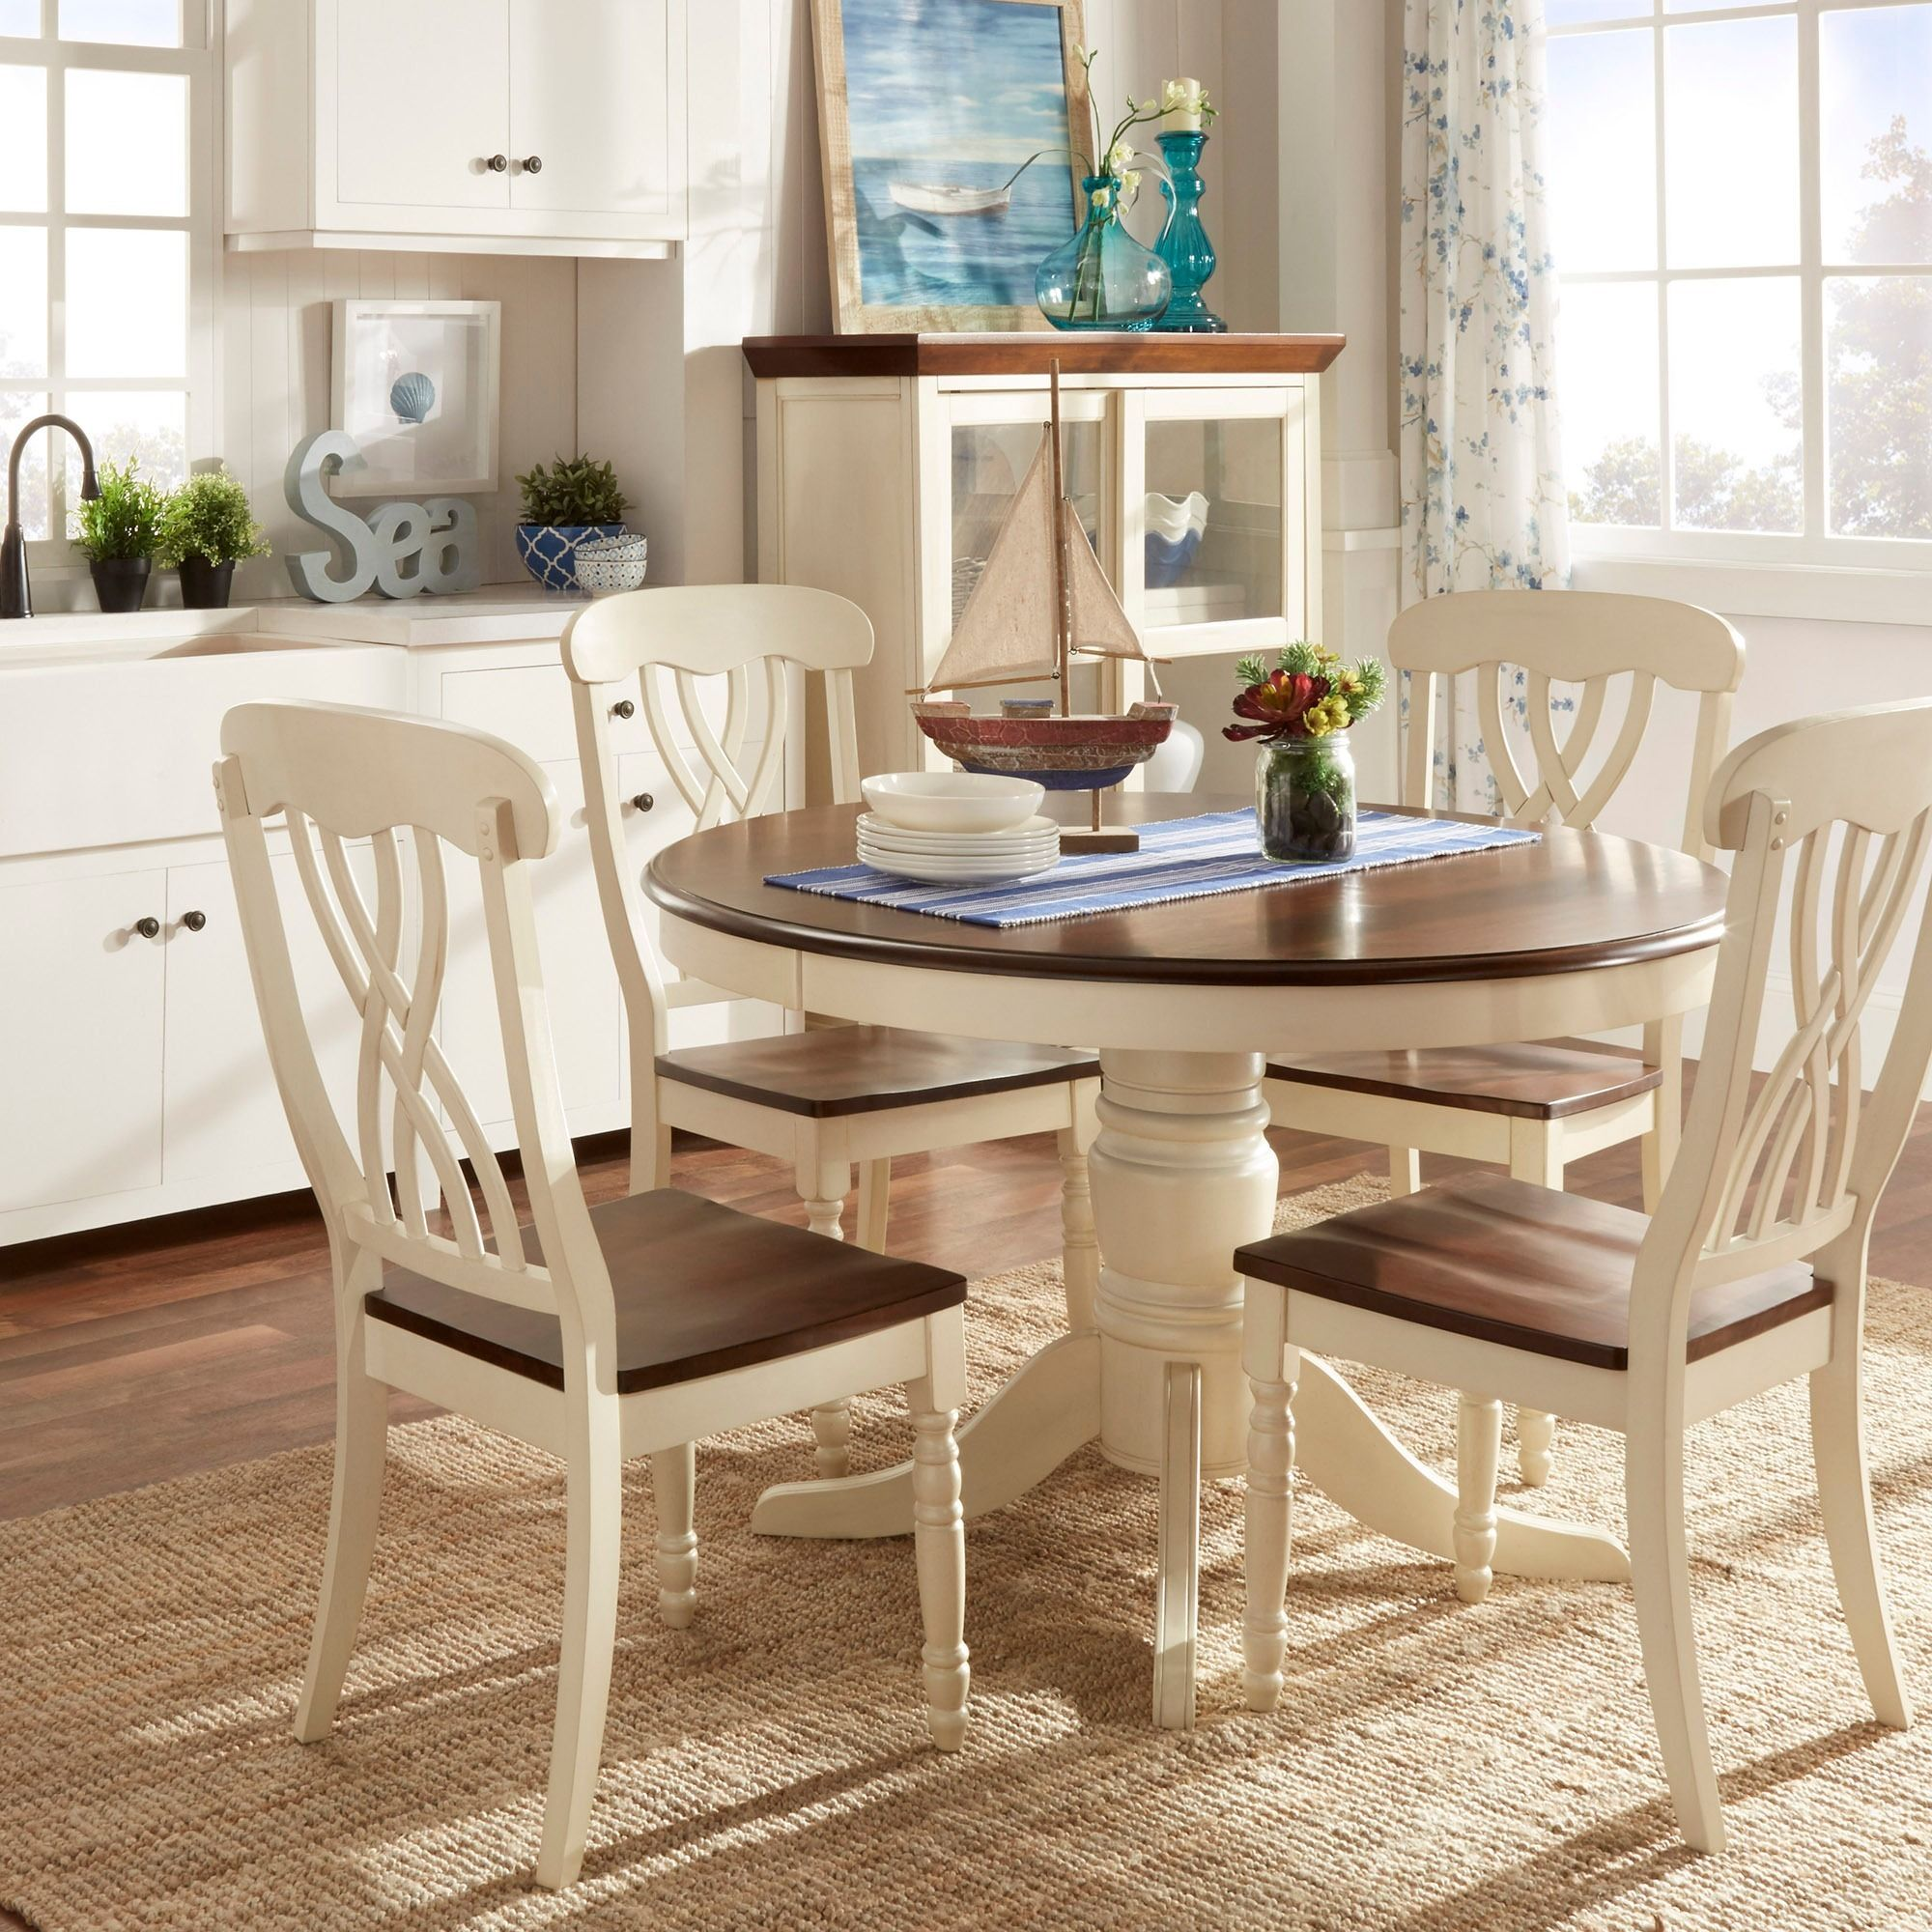 The Design Of This Dining Set From Mackenzie Captures The Essence Of A  Country Home Showcasing An Antique White And Cherry Finish.